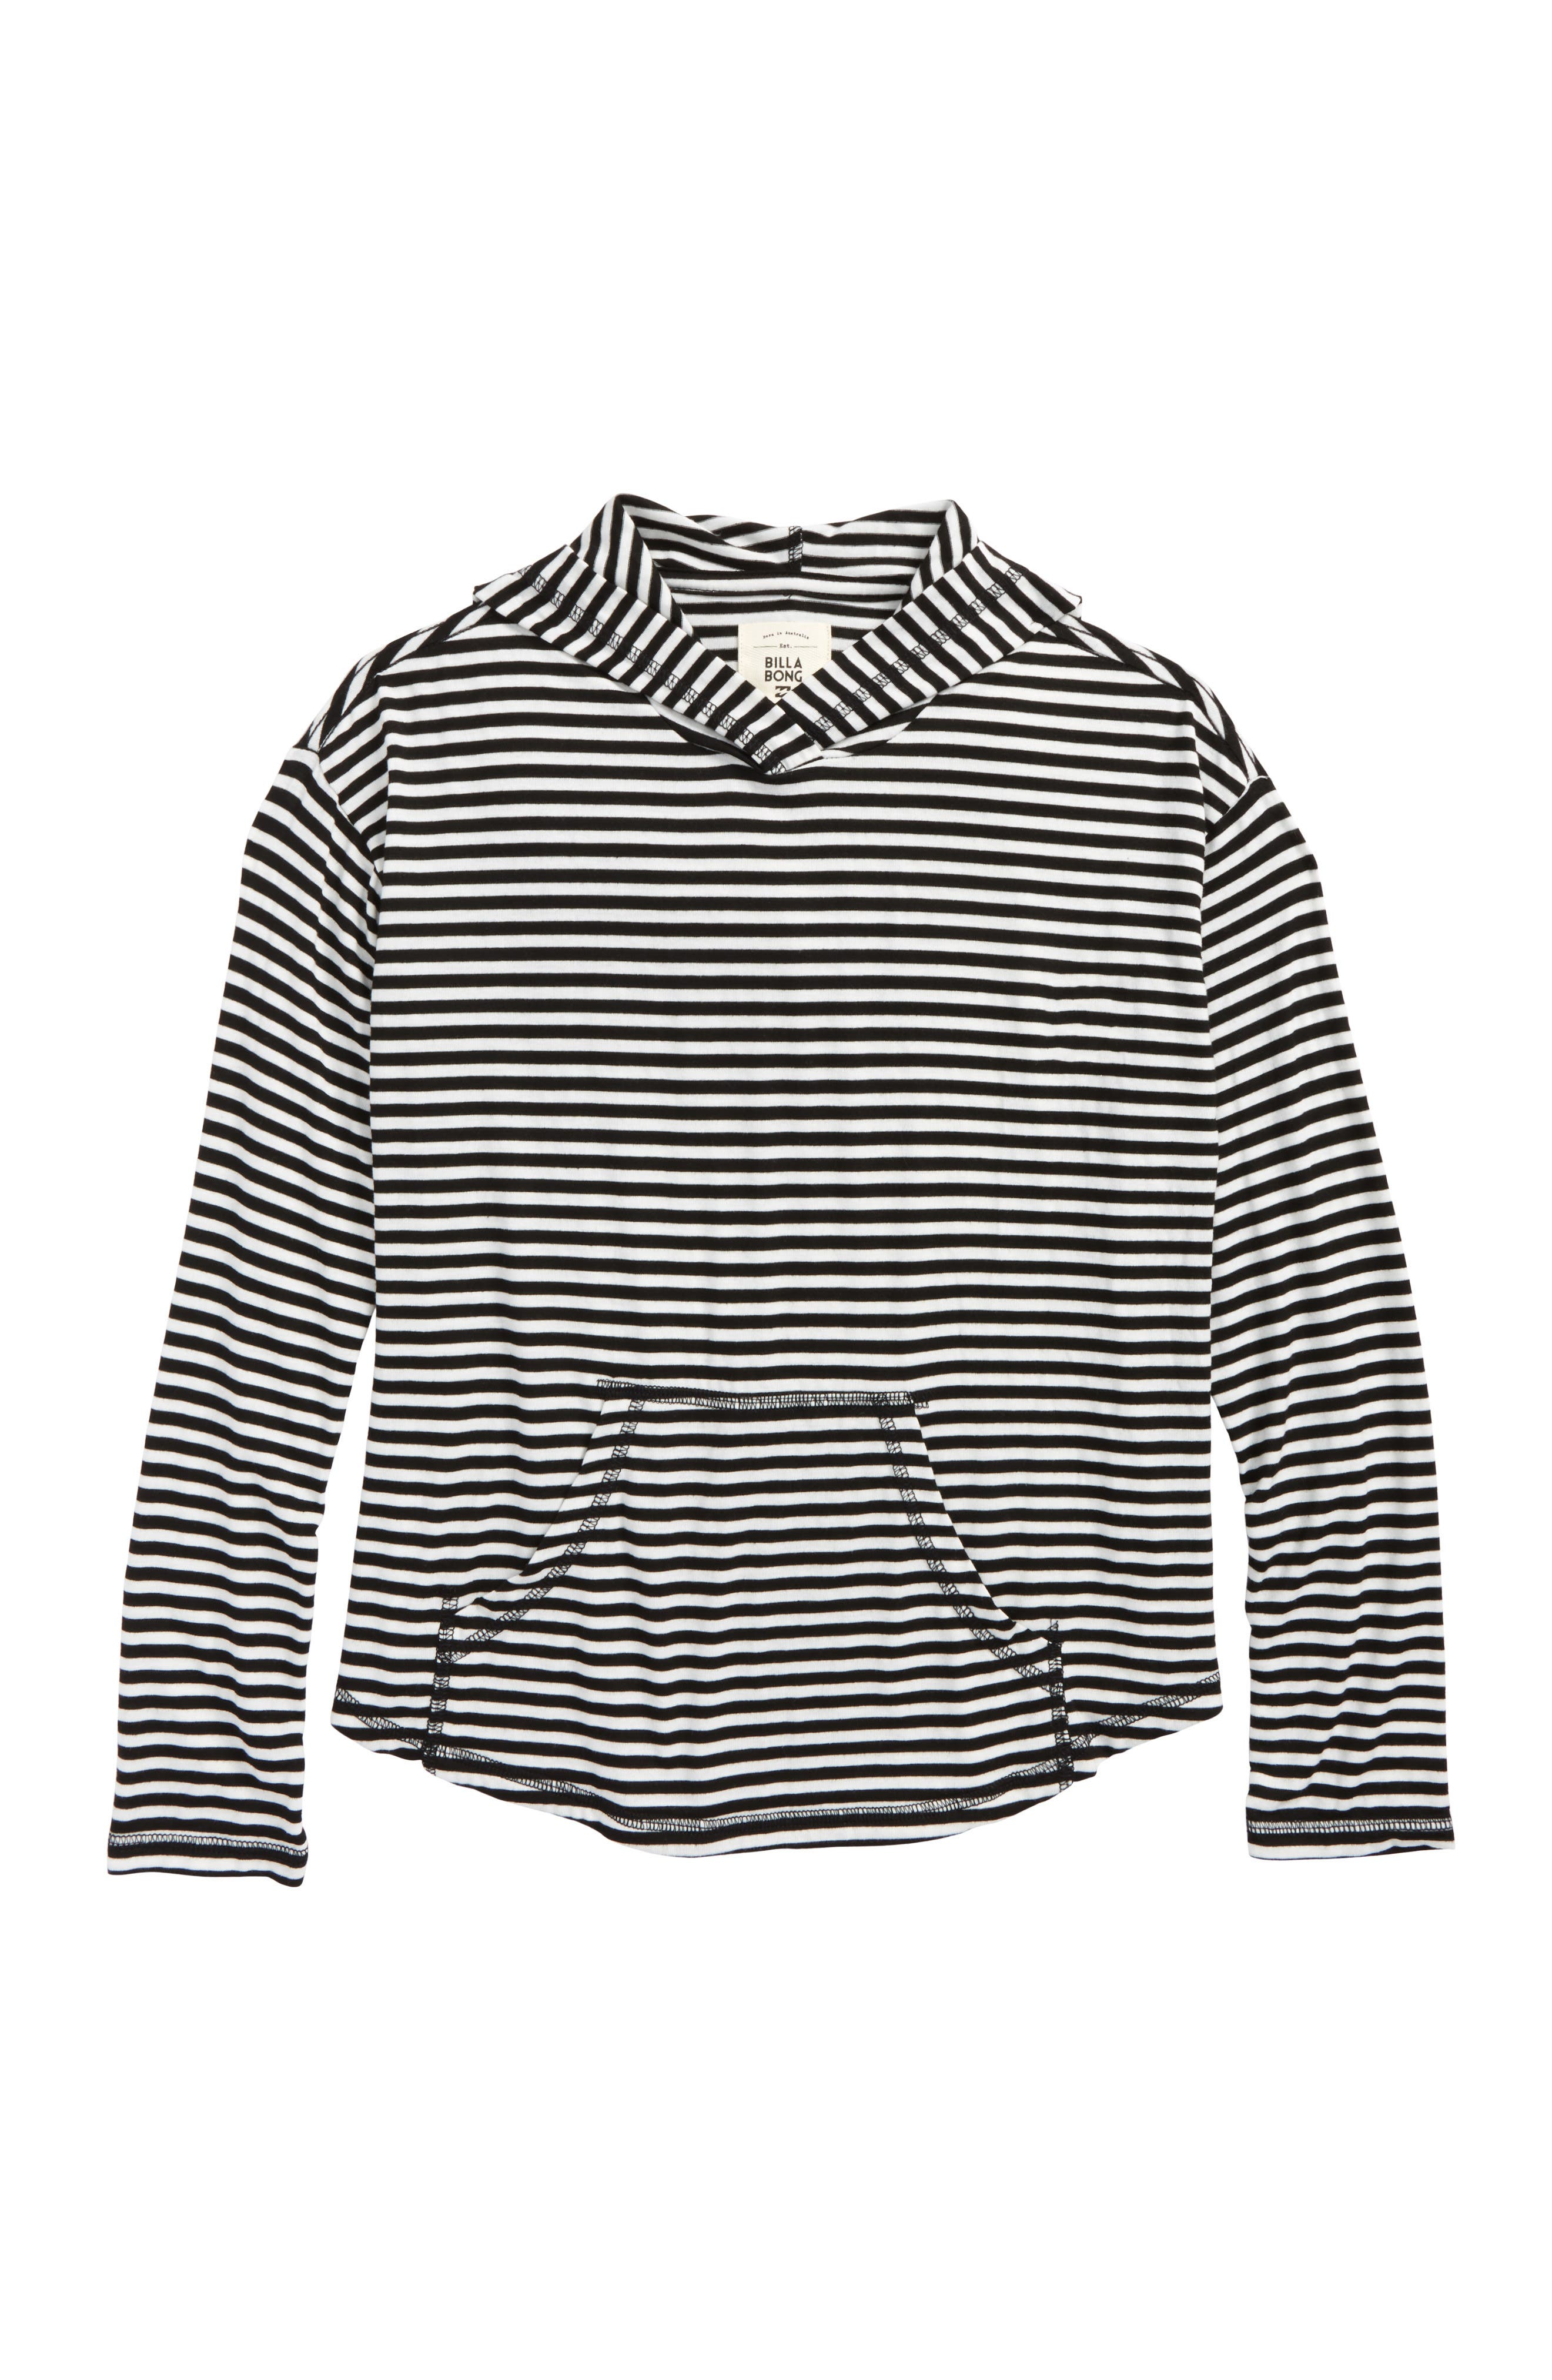 These Days Stripe Hoodie,                         Main,                         color, 002